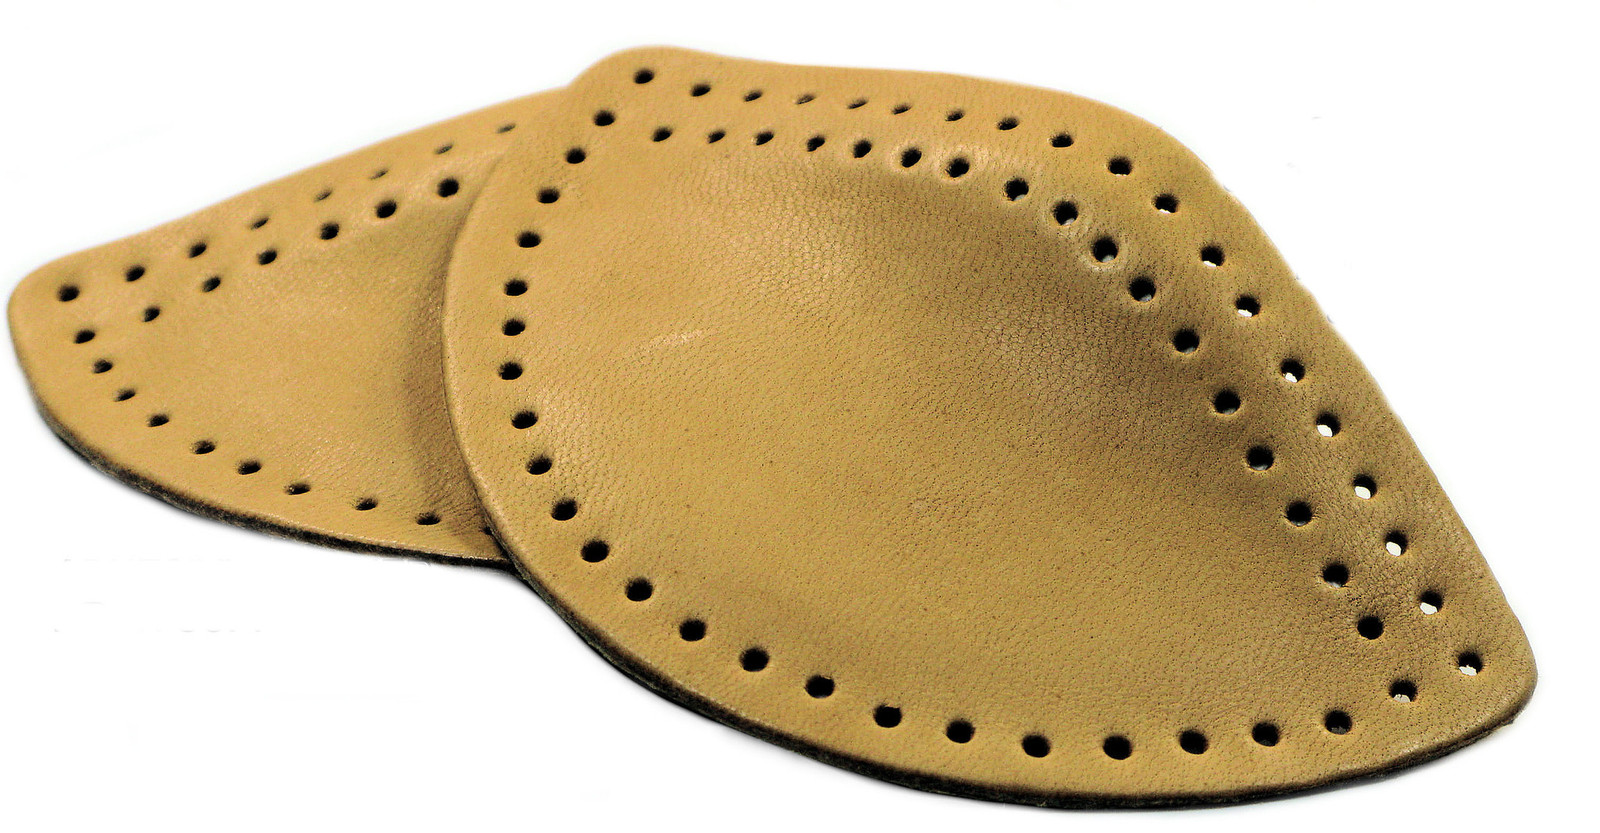 Arch supports Leather Upper Sizes UK 3-12 - $5.25